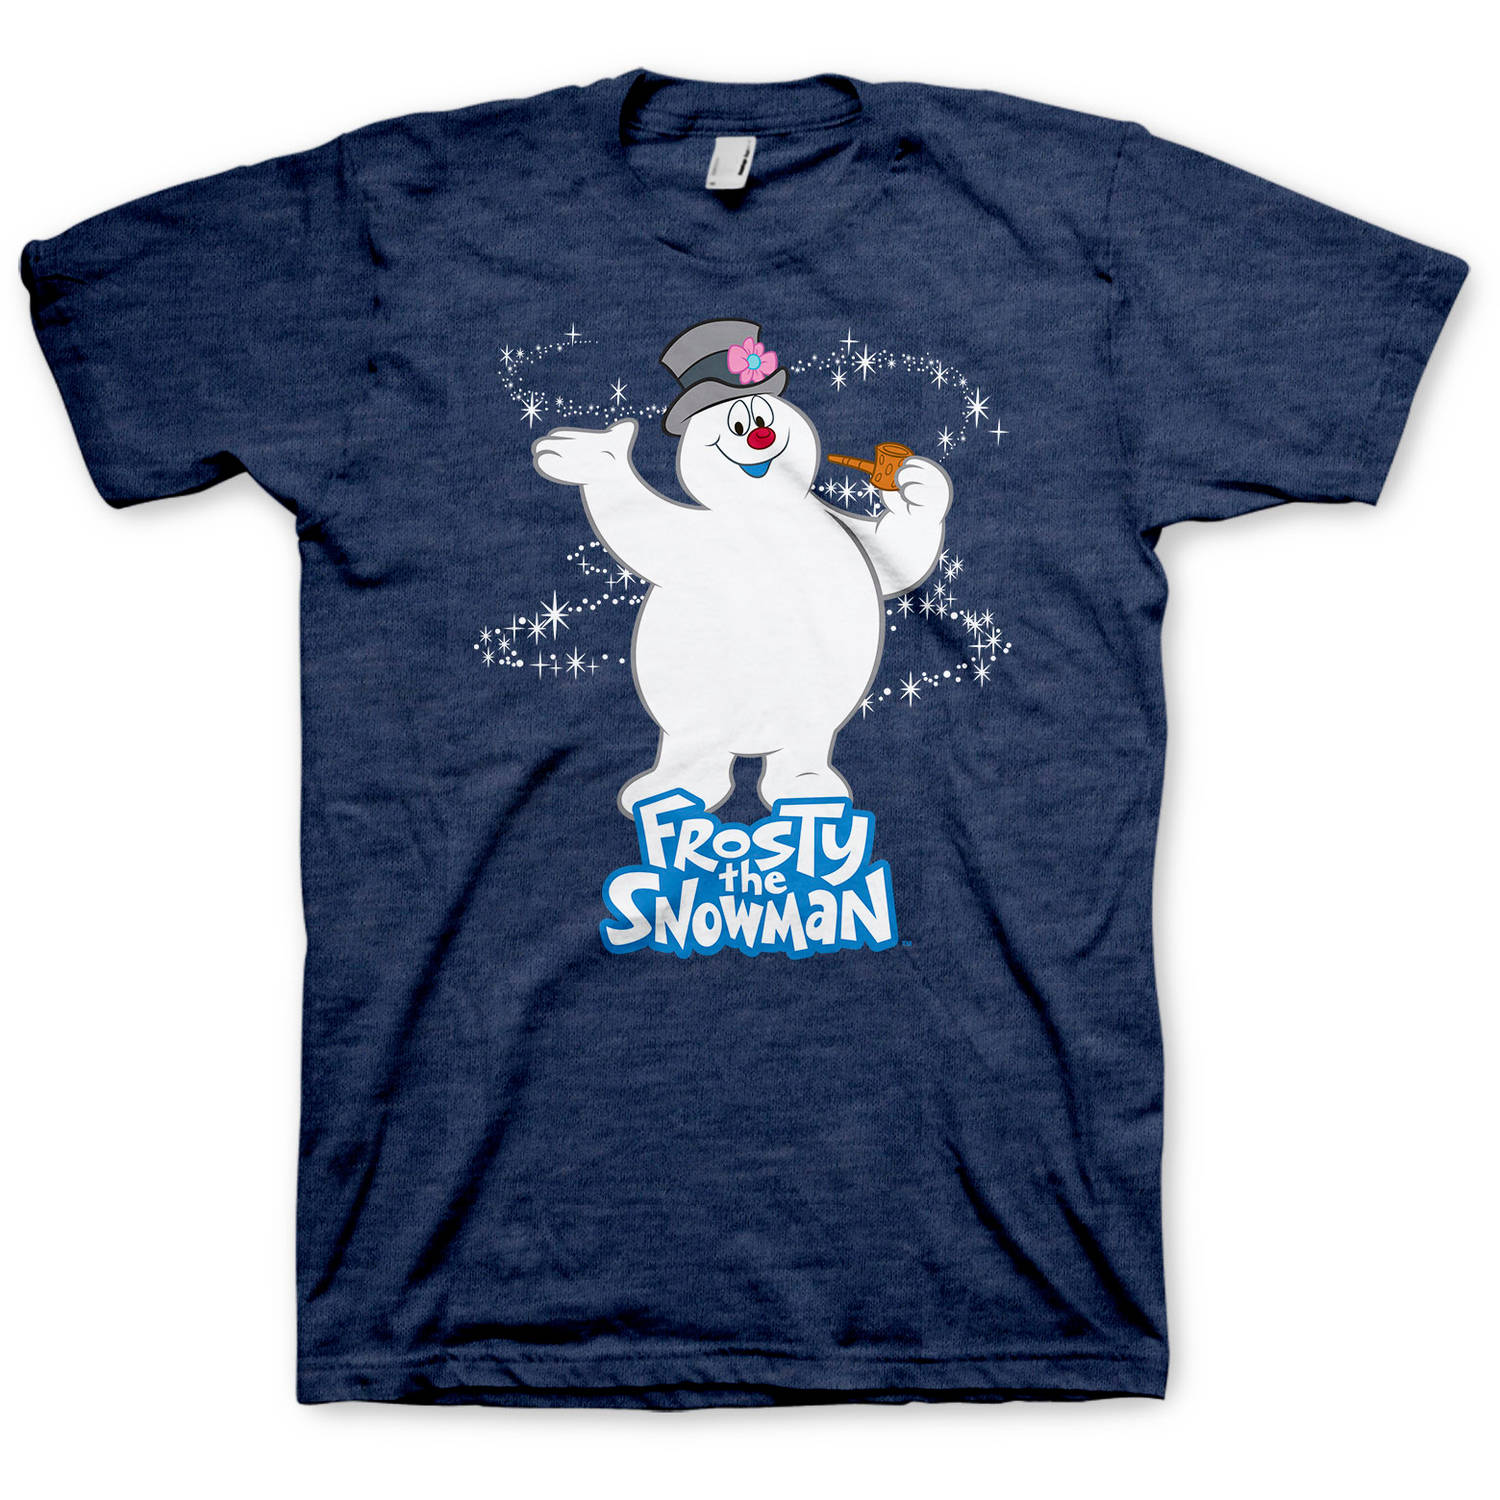 Frosty the Snowman Men's Graphic Tee